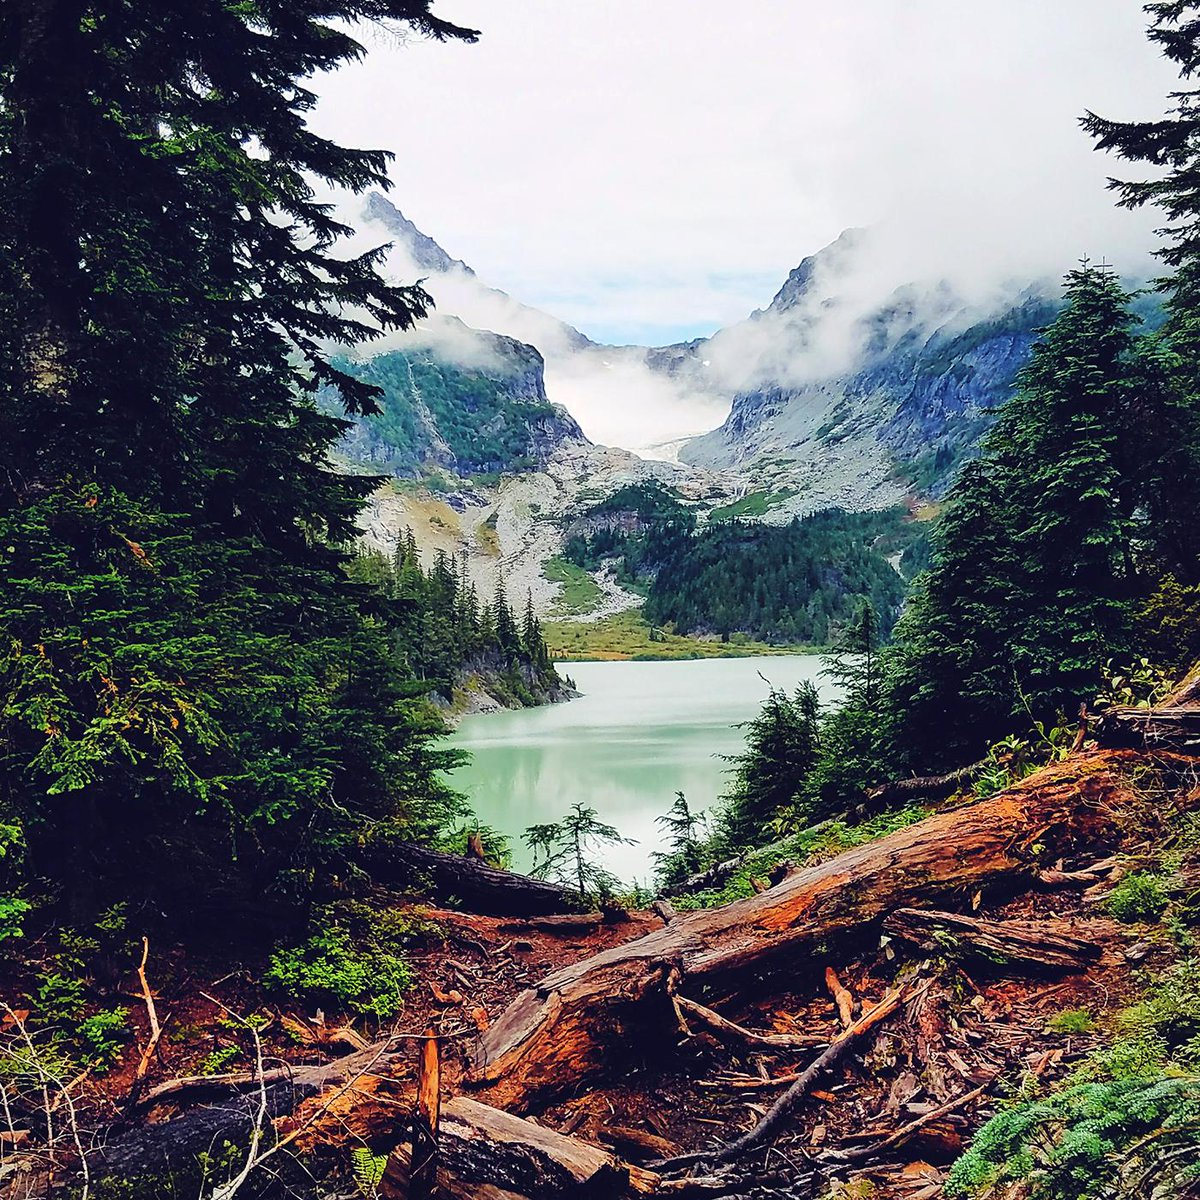 DAILY SHOT | Off to explore this weekend? 🌲 Perhaps a visit to one of the most striking lakes in the Henry M. Jackson Wilderness, Blanca Lake Trailhead? 📷 Yoshi Takekawa #BlancaLake #Washington #Snohomish #Cascades #mountain #hiking #travel #outdoor #explore #lake #adventure